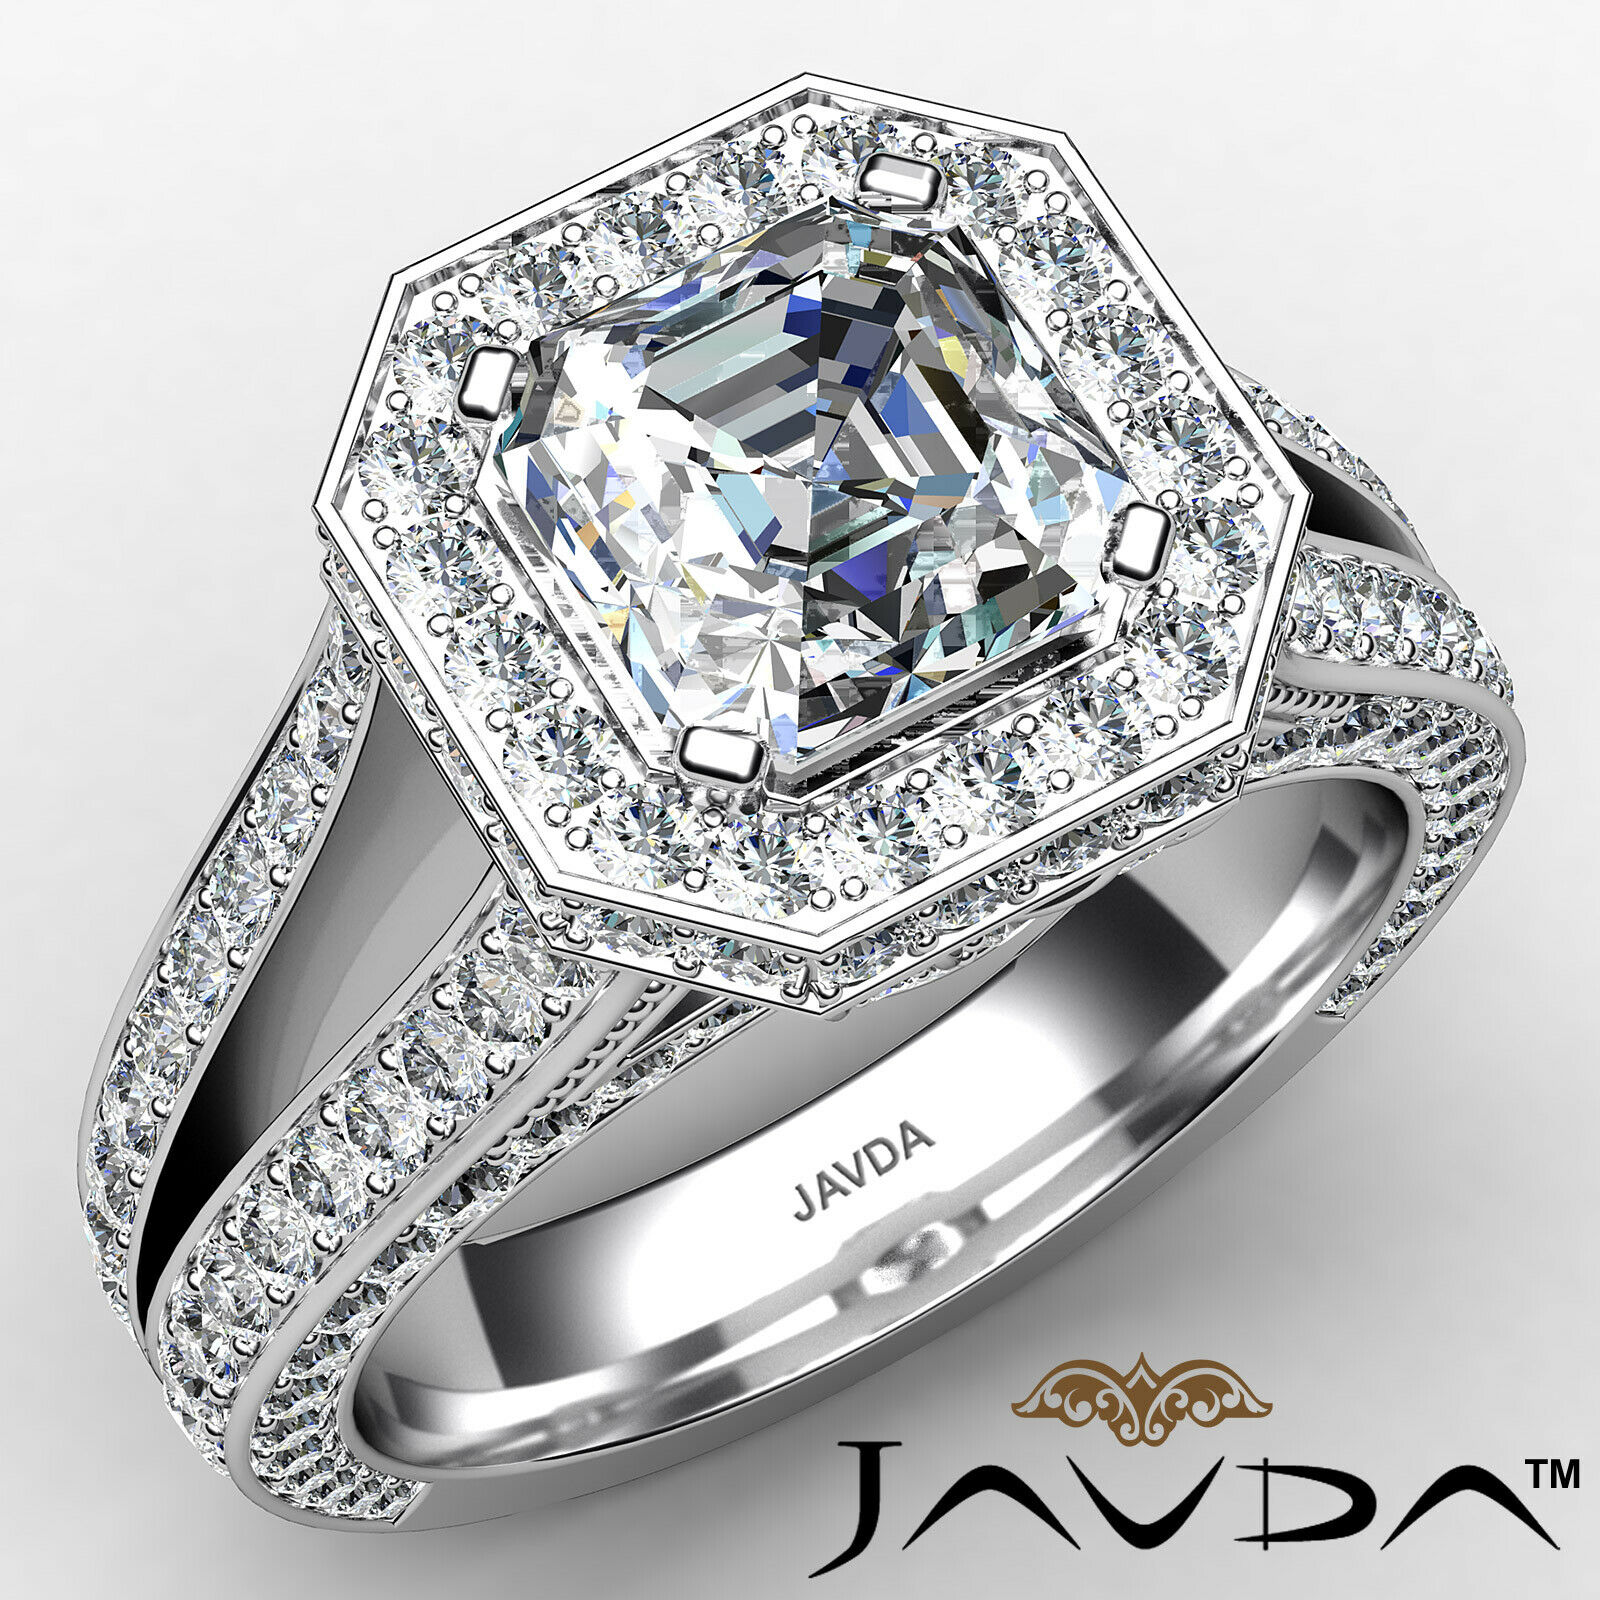 Halo Asscher Diamond Engagement Ring GIA Certified G Color & SI2 clarity 2.4 ctw